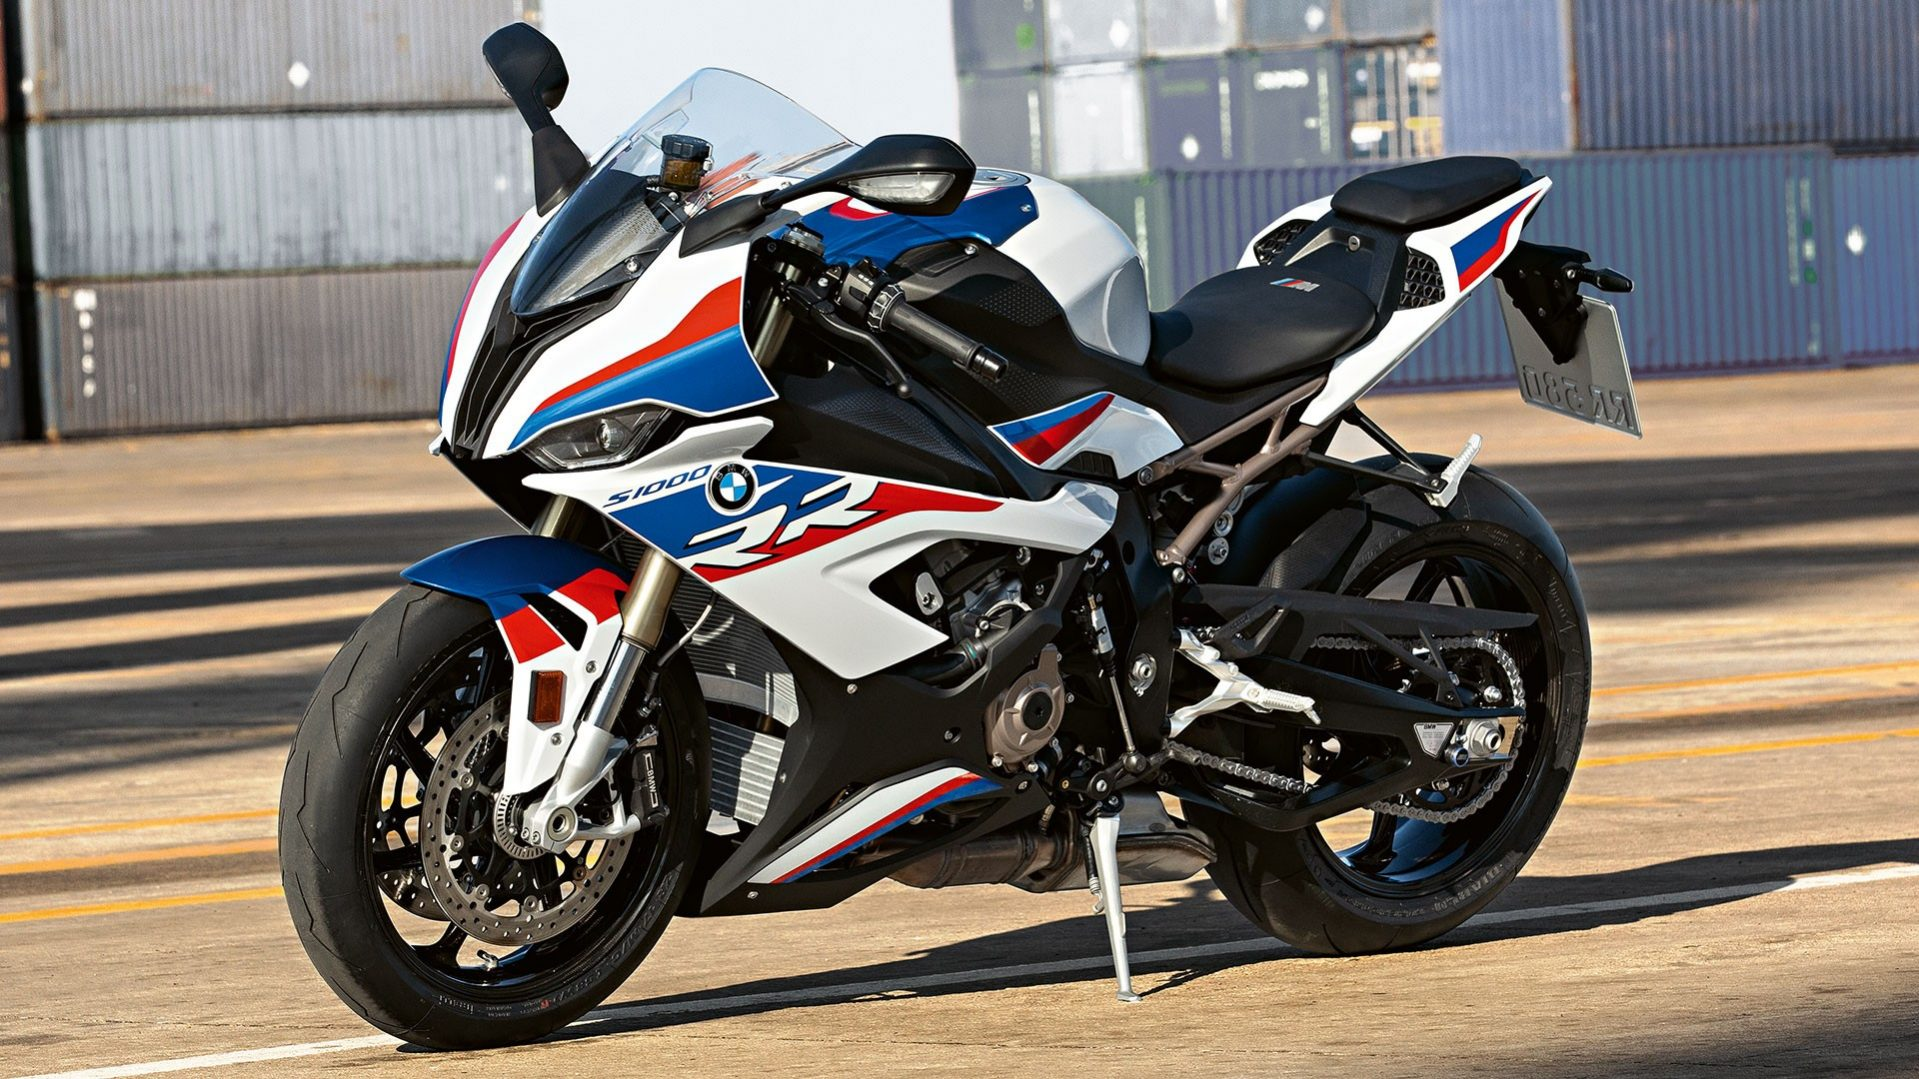 2020 bmw s1000rr price in india  colors  specifications  mileage  review